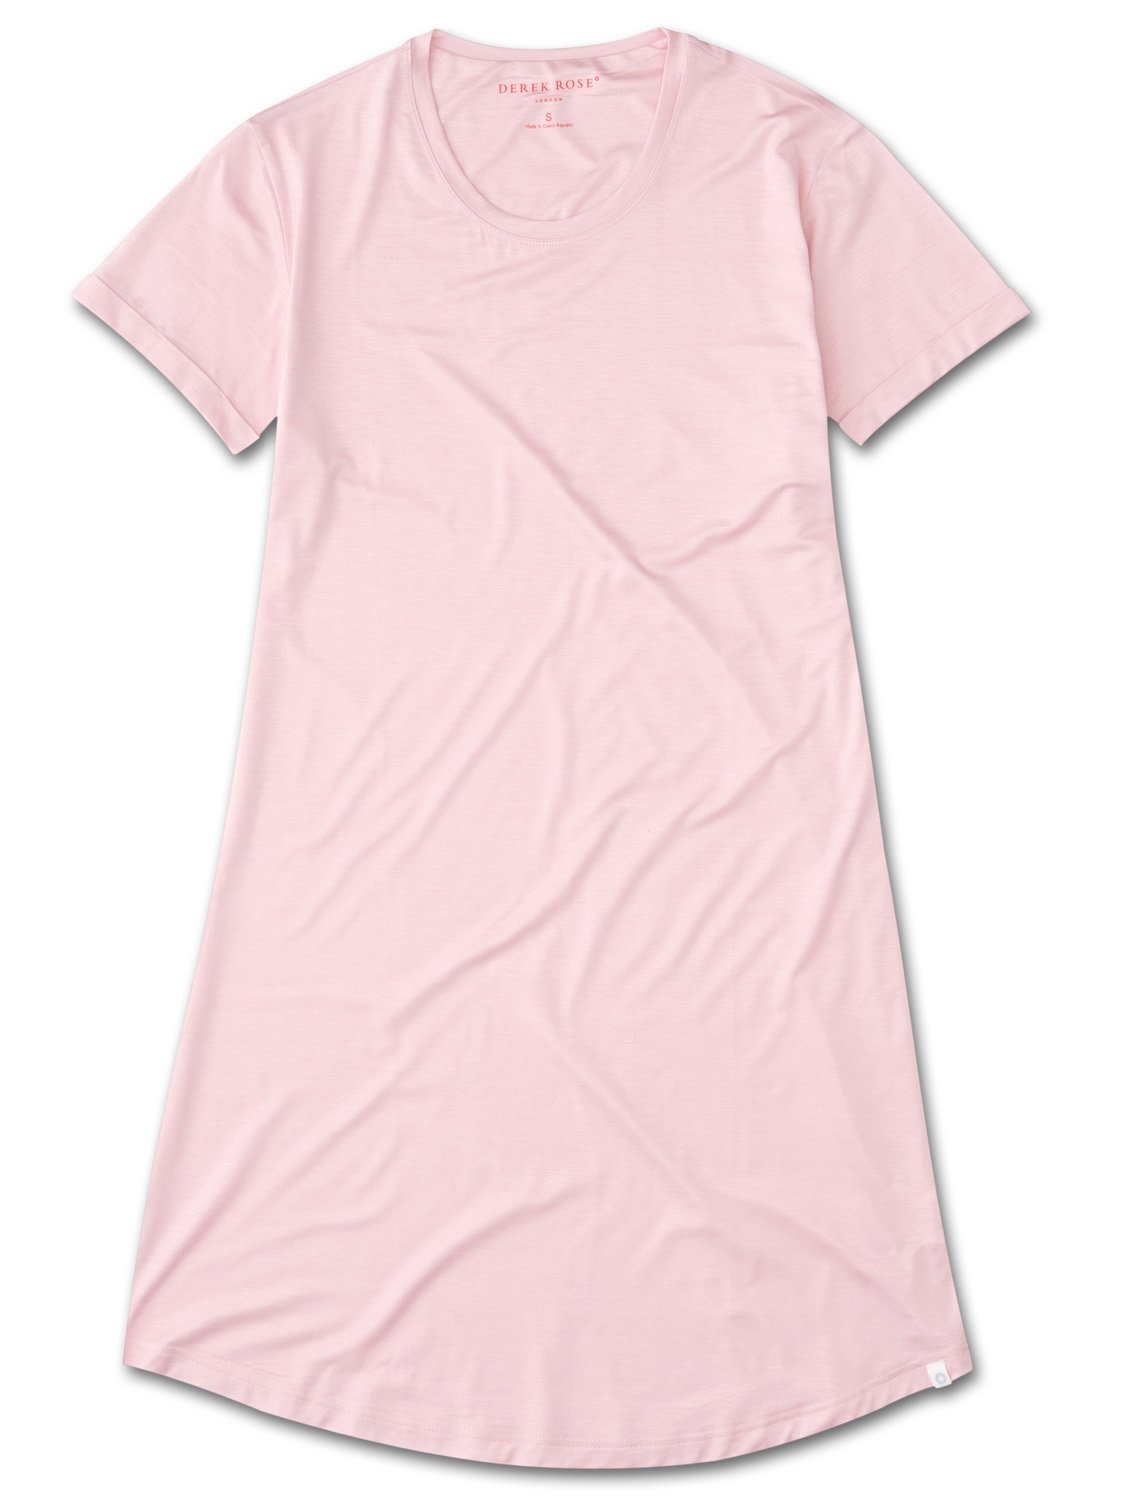 Women's Sleep T-Shirt Carla 3 Micro Modal Stretch Pink